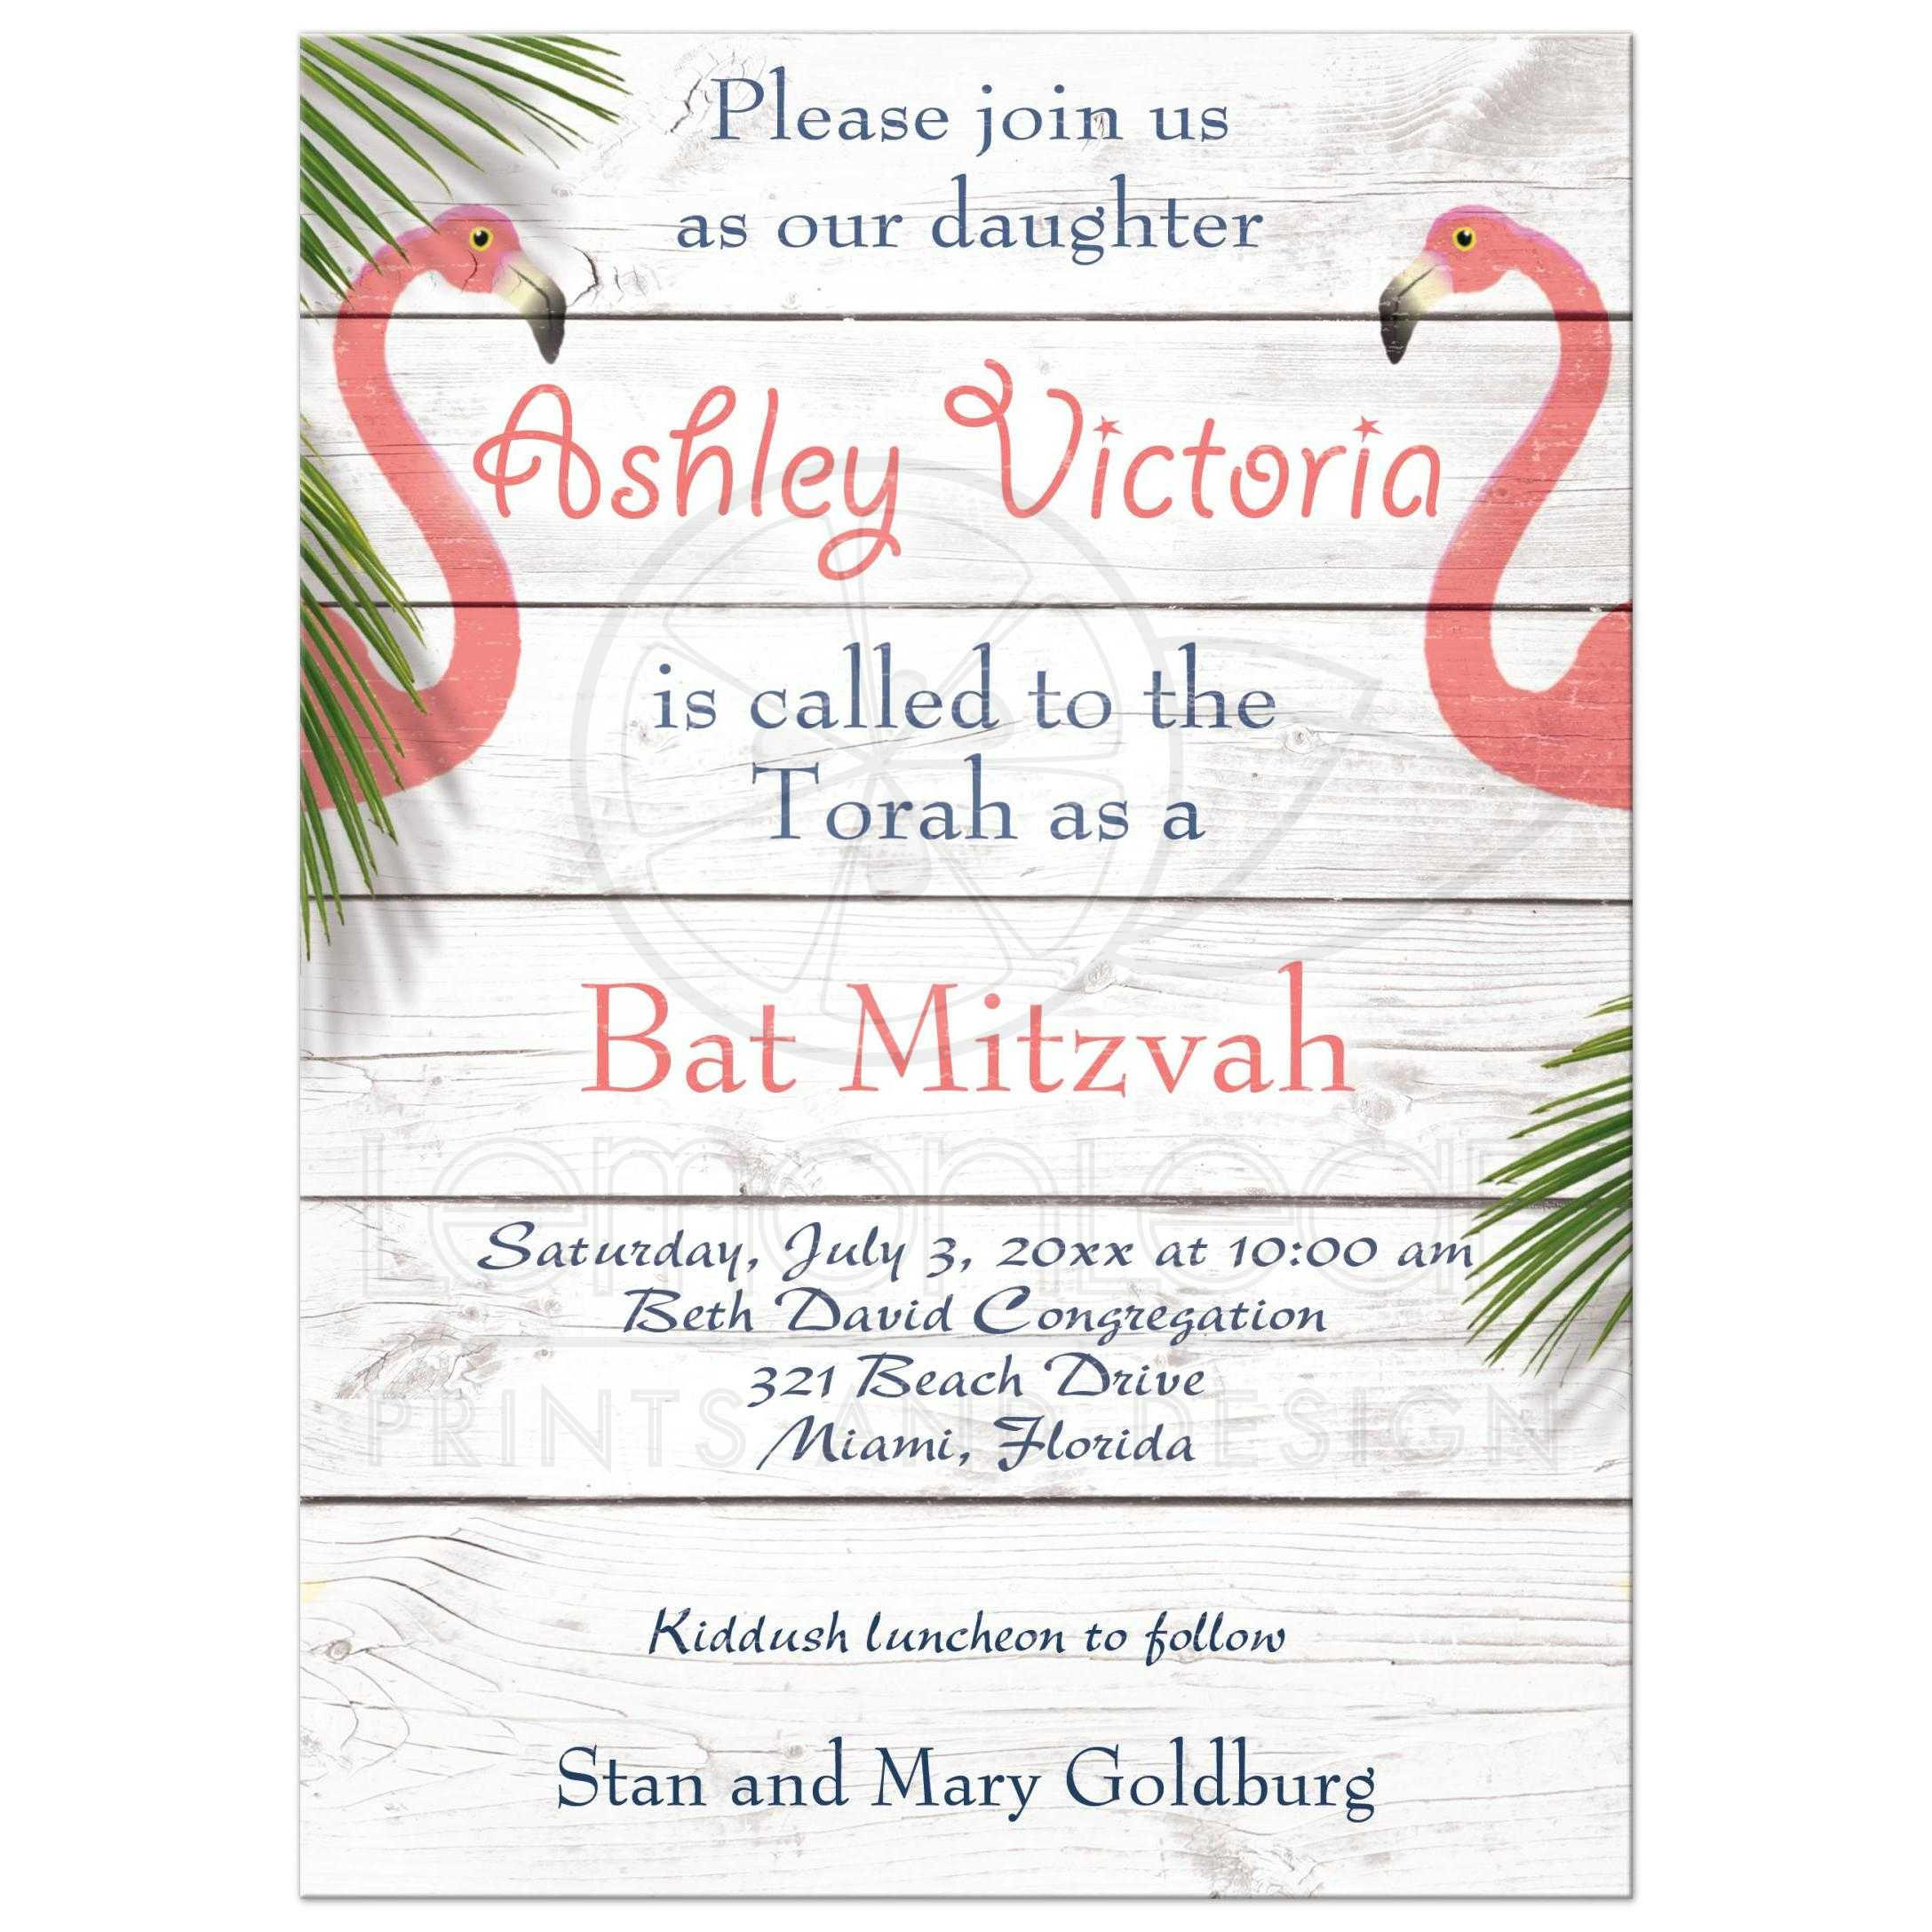 Bat Mitzvah Invitation Coral Flamingos